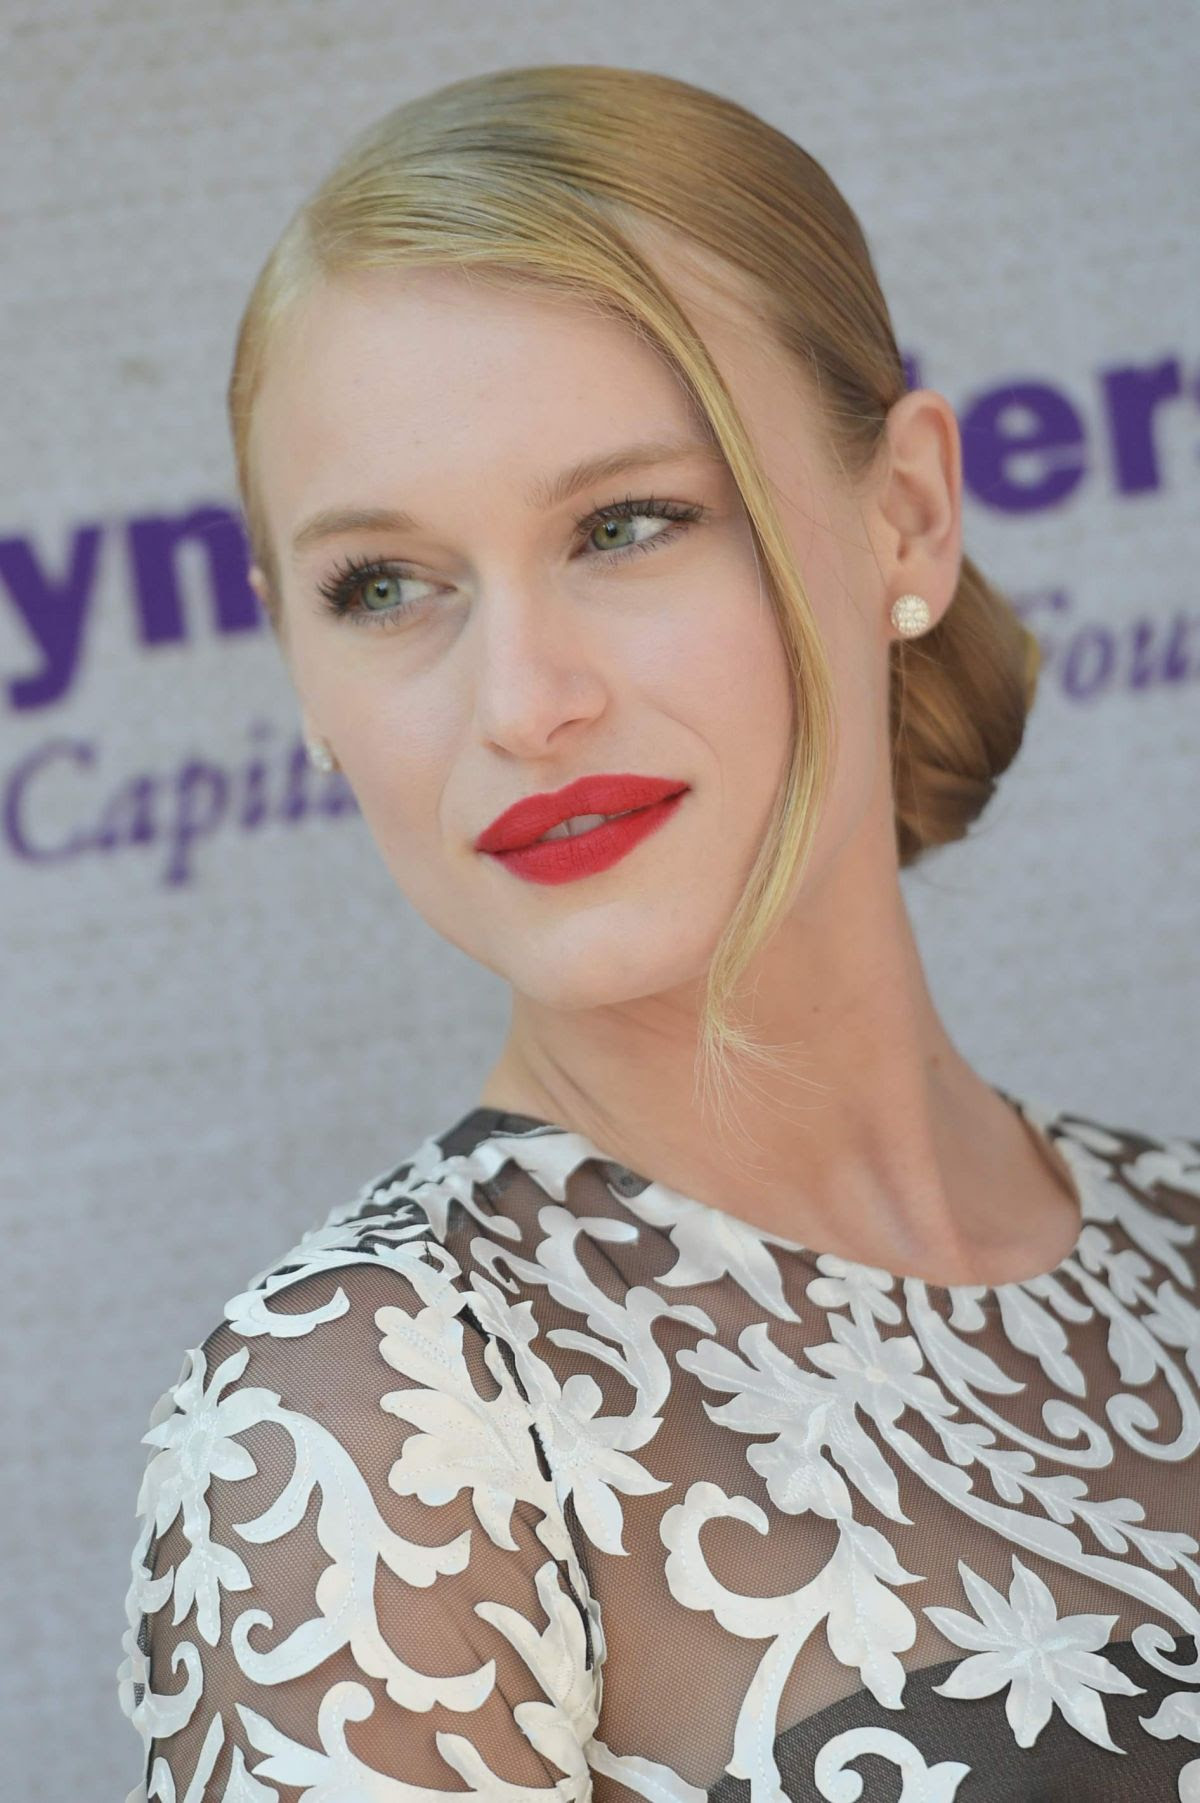 LEVEN RAMBIN at Chrysalis Butterfly Ball